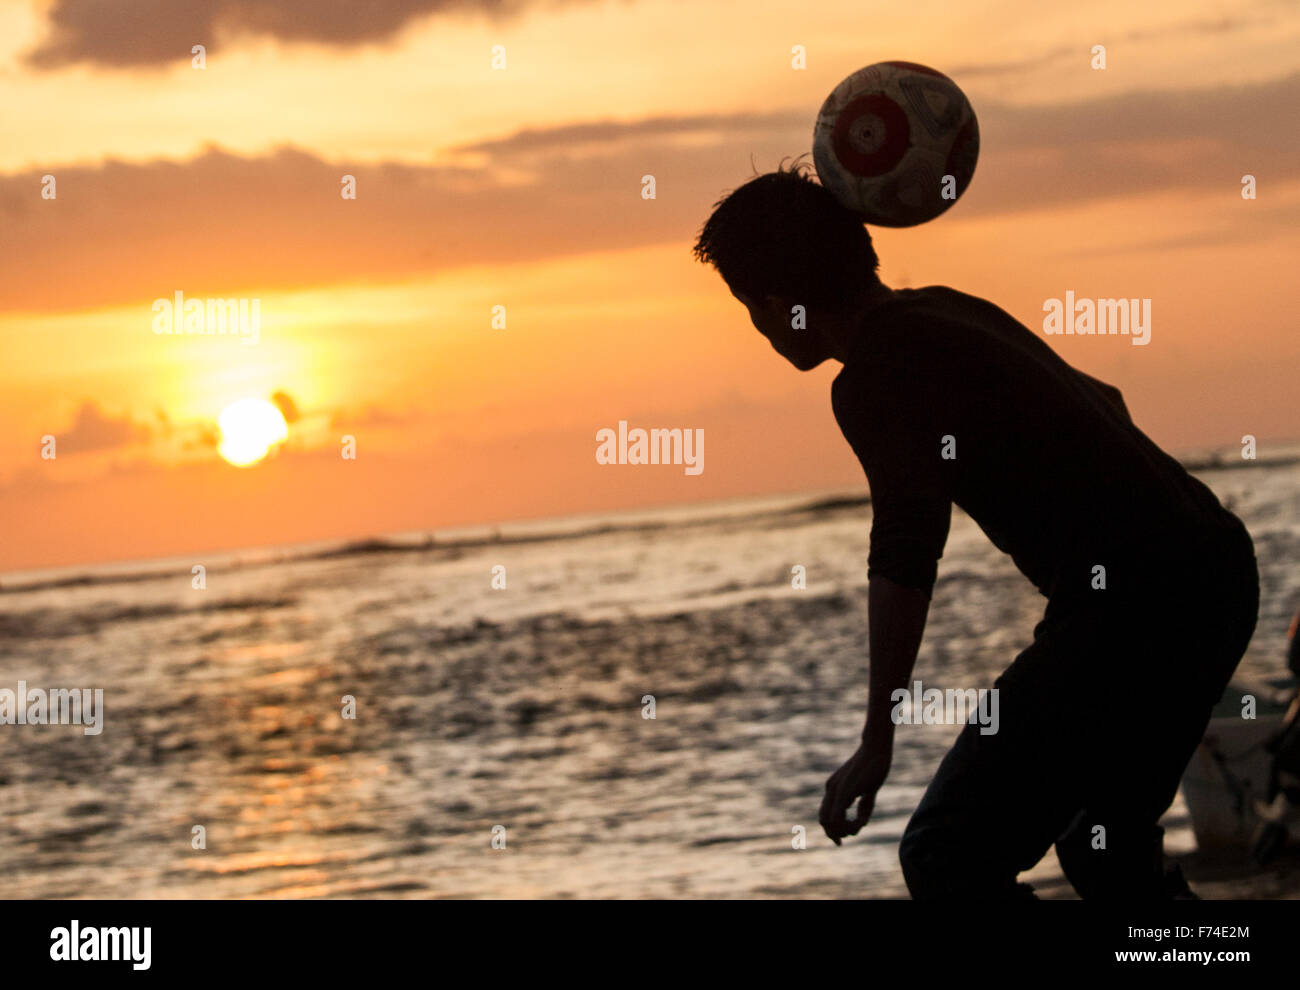 Soccer player heads a ball on the beach at sunset, Zihuatanejo, Guerrero, Mexico. - Stock Image